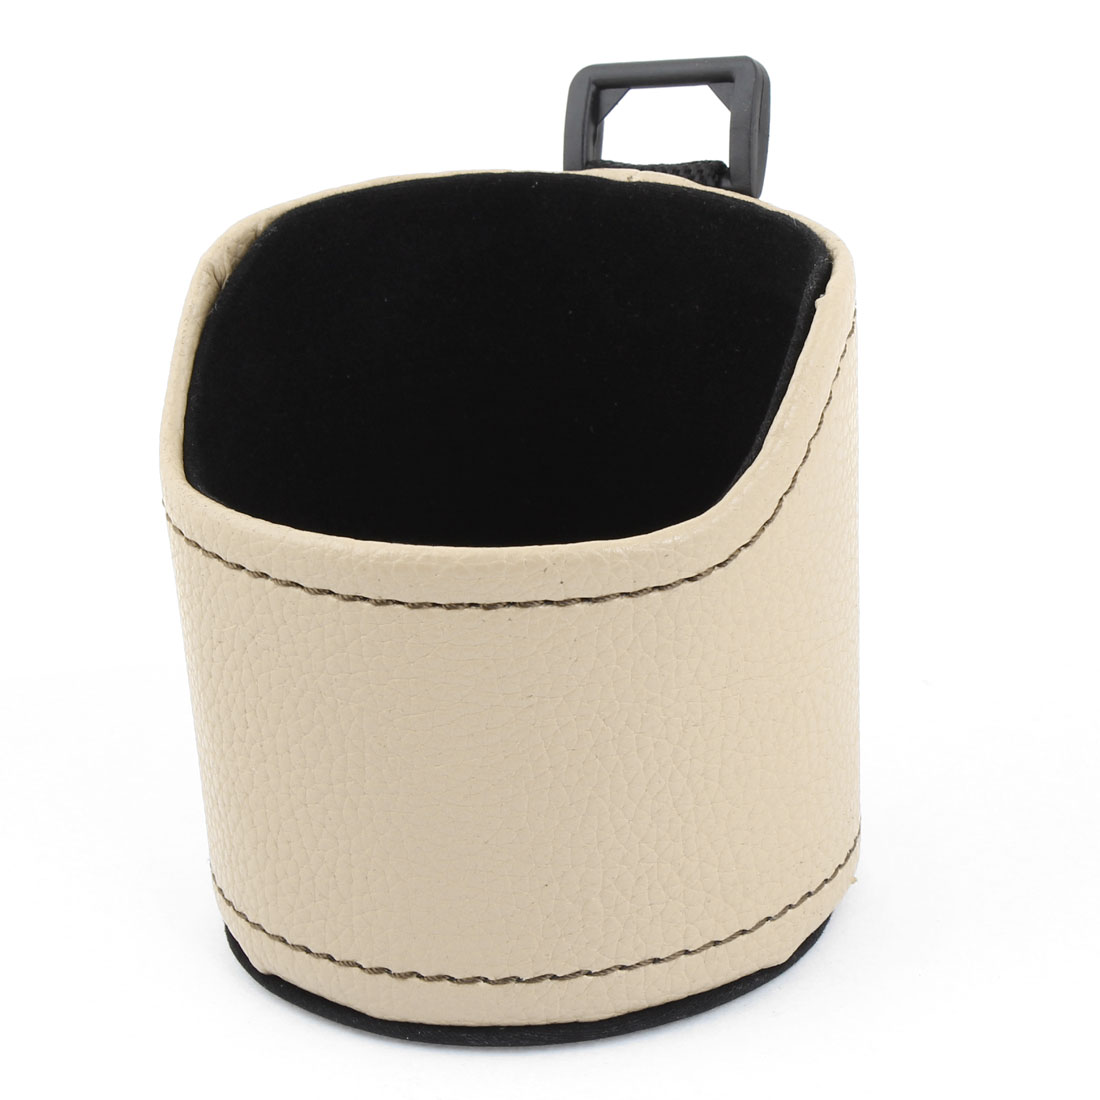 Khaki Faux Leather Cylinder Shape Mobile Phone Pouch Holder Pocket for Car Vehicle